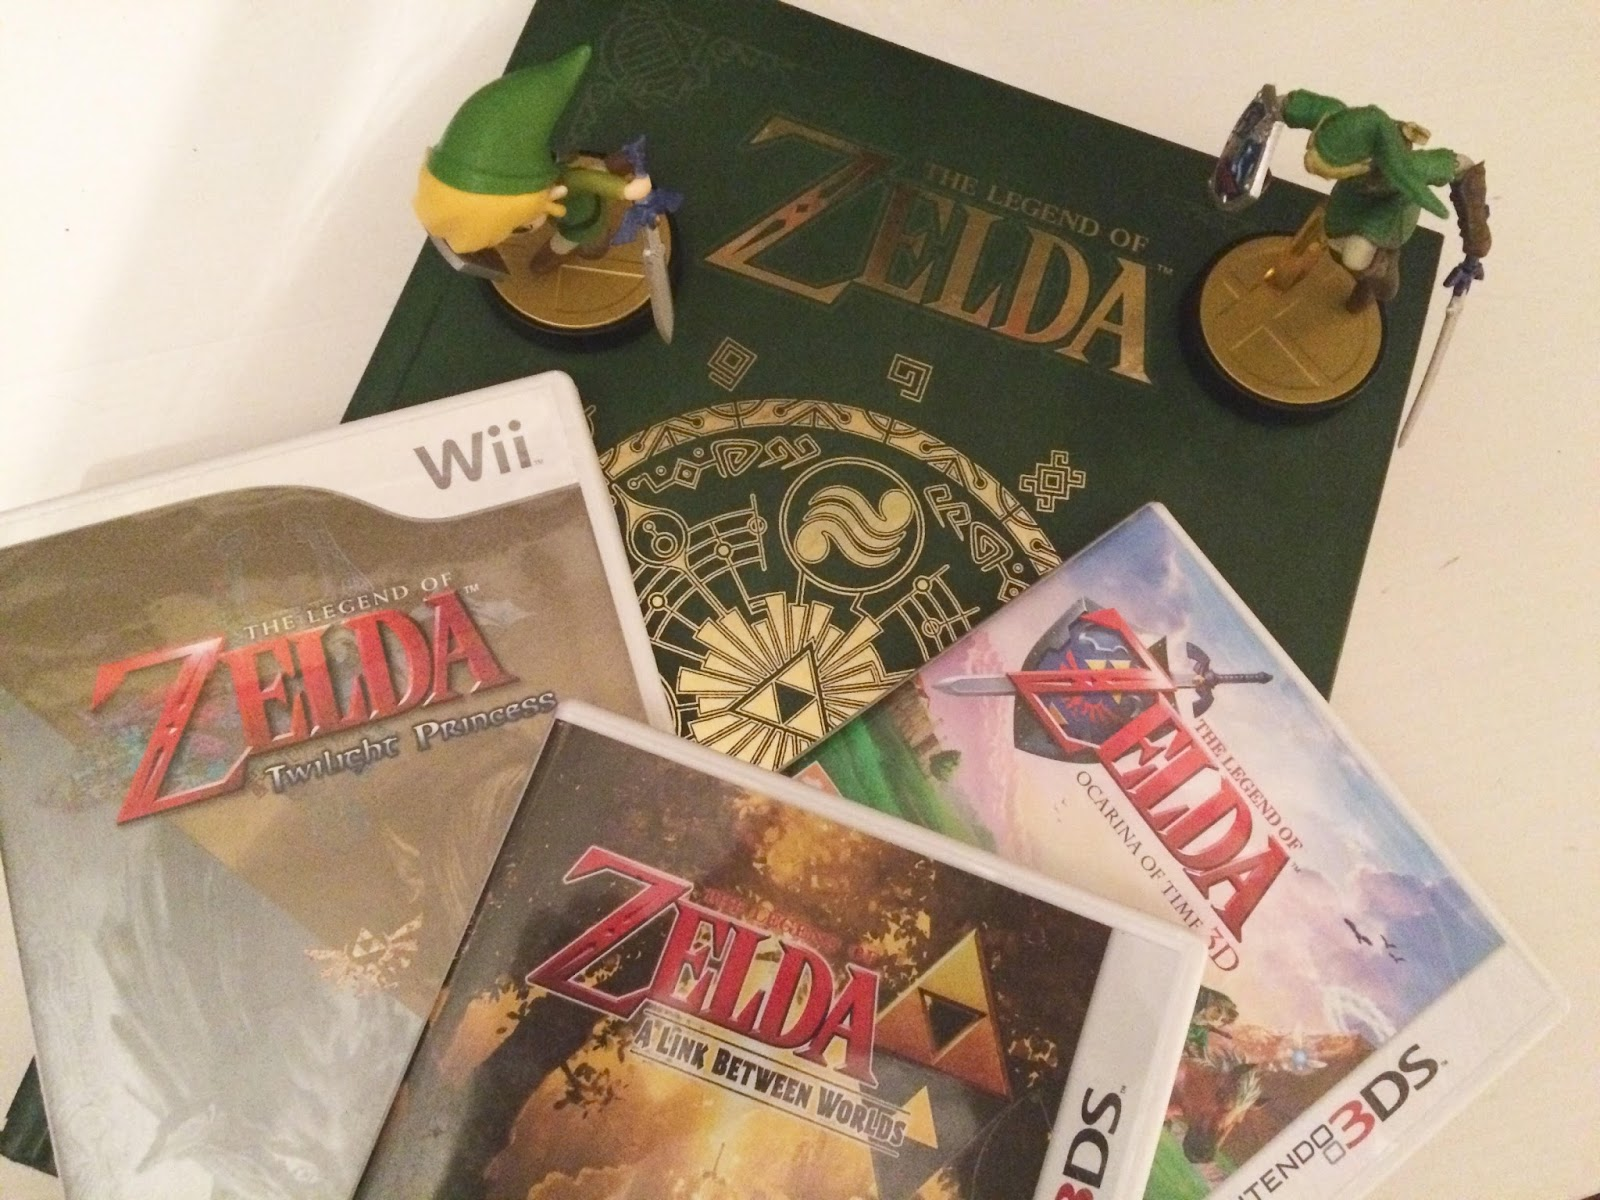 To become    dad: Legends of Zelda Symphony of the Goddesses at